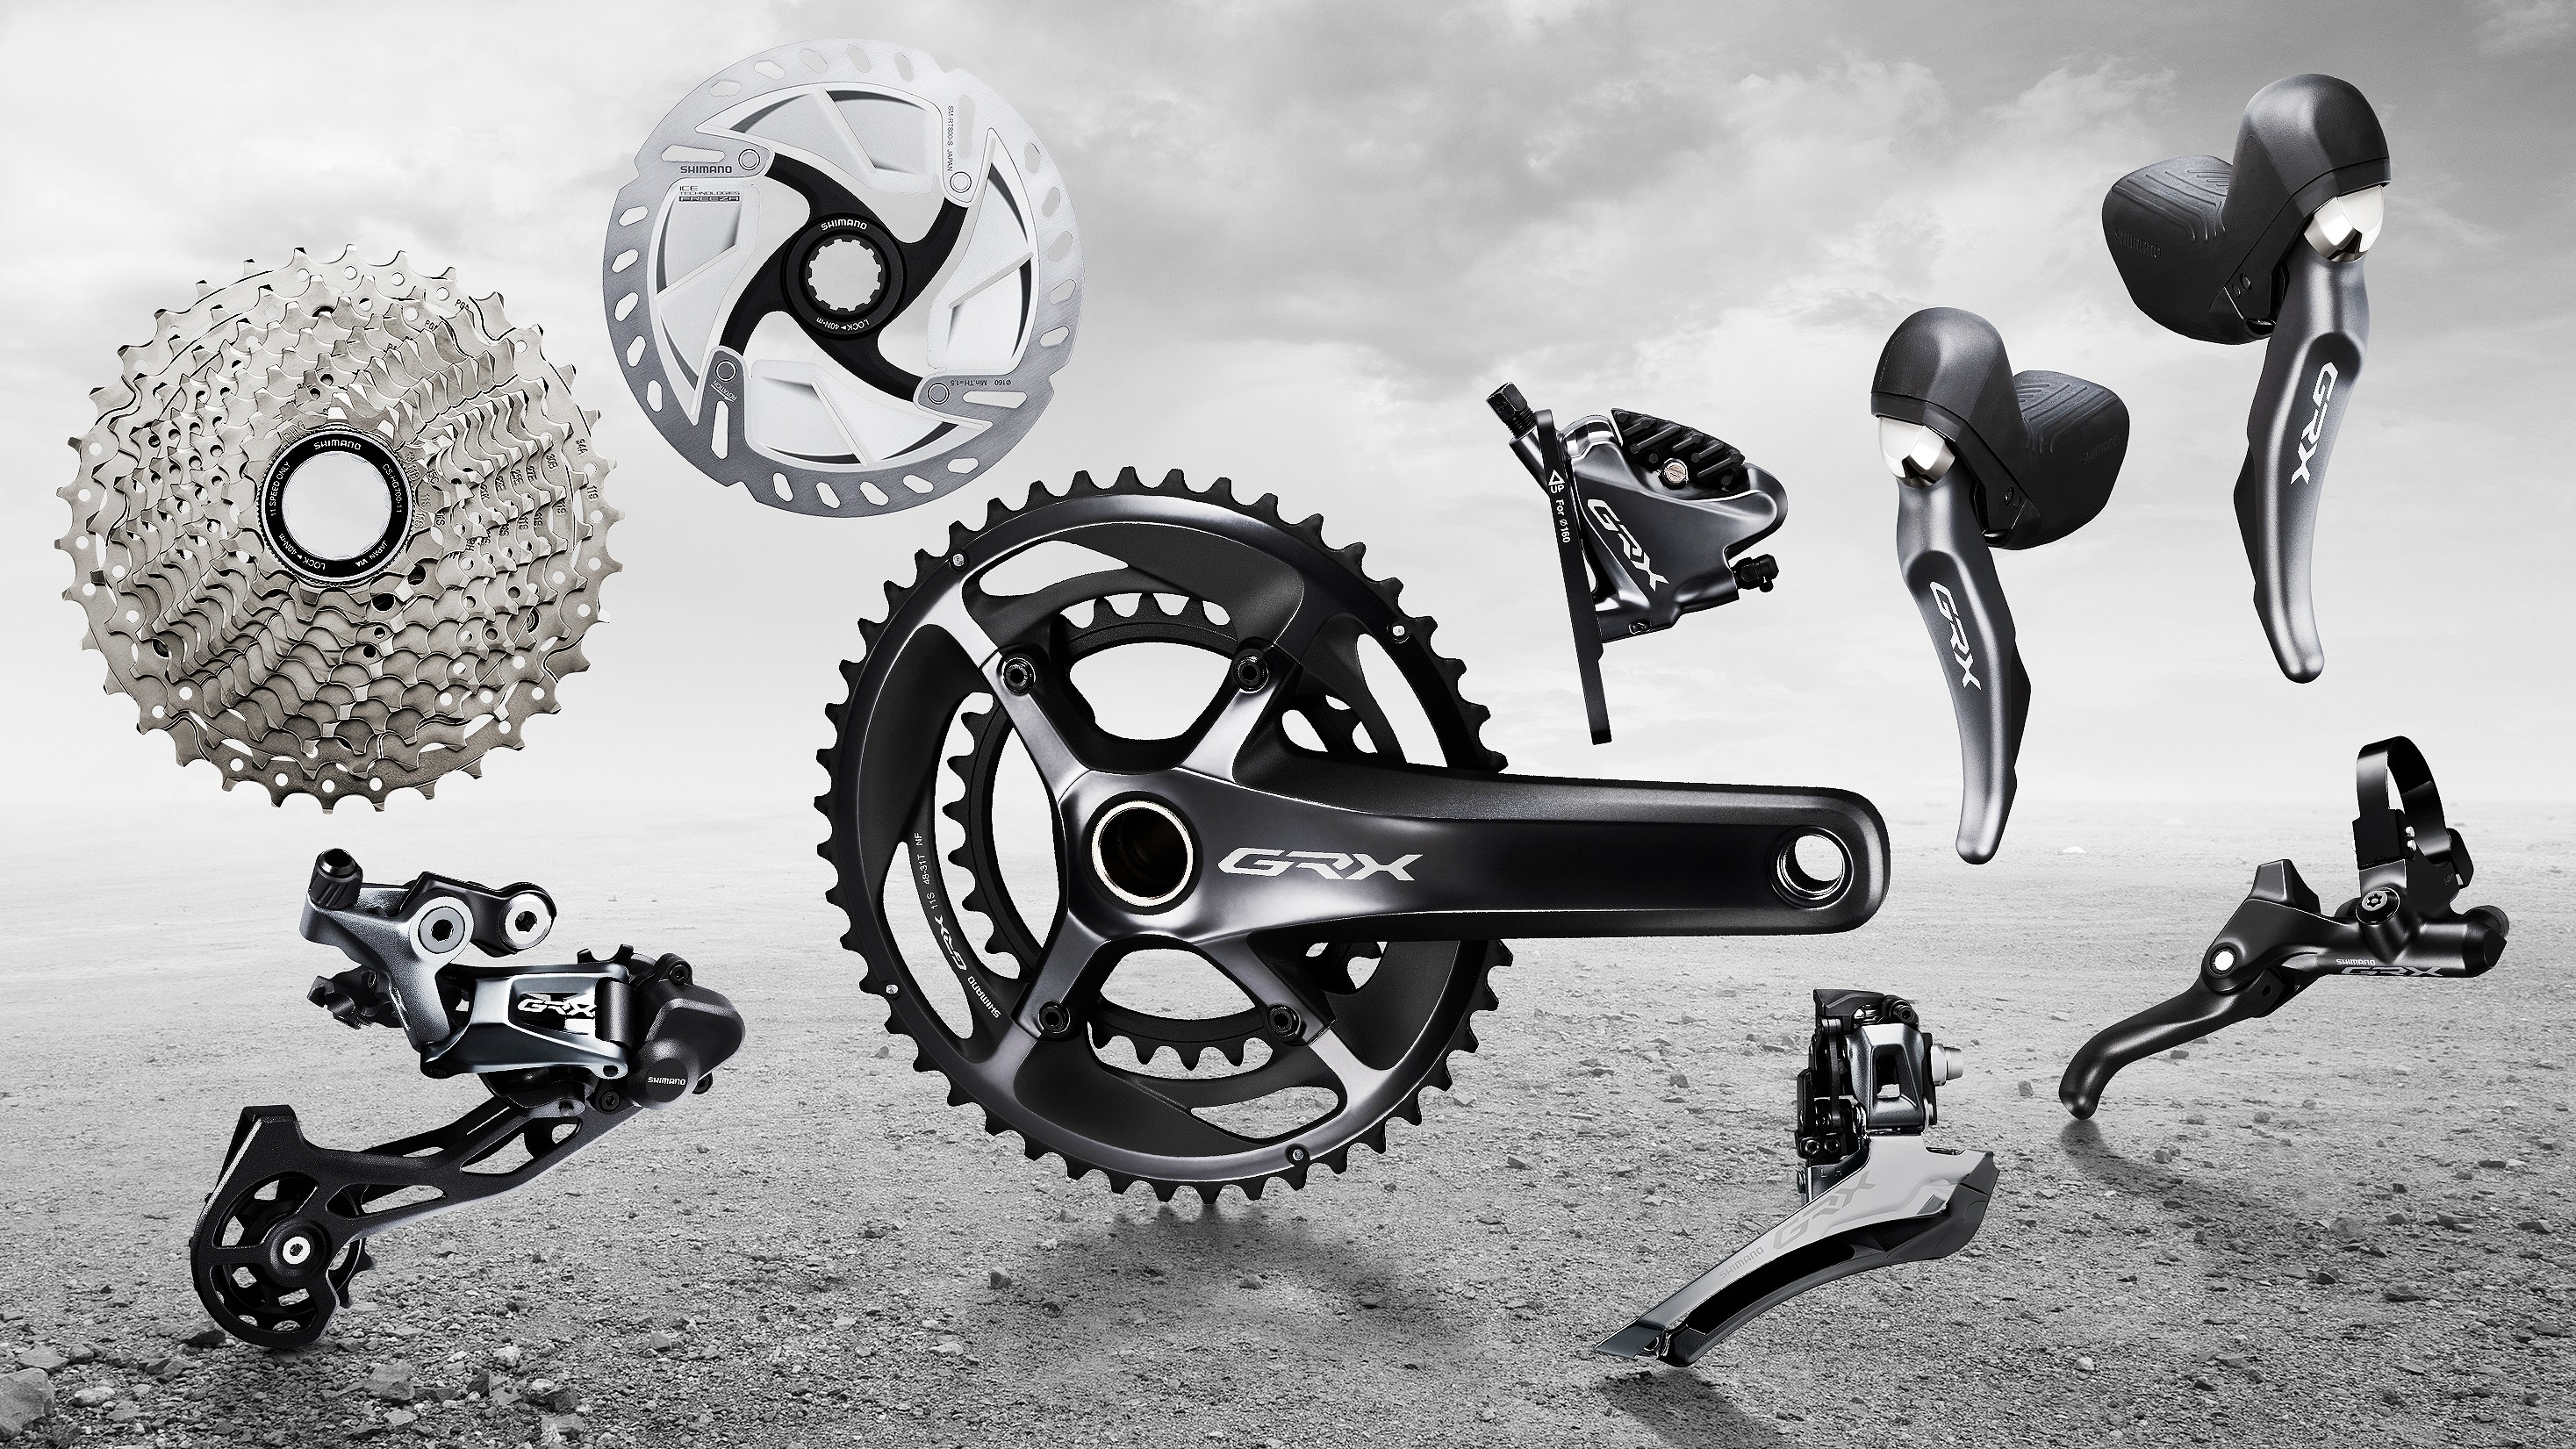 Shimano GRX mechanical 11-speed components including cranks, levers, derailleur, brakes